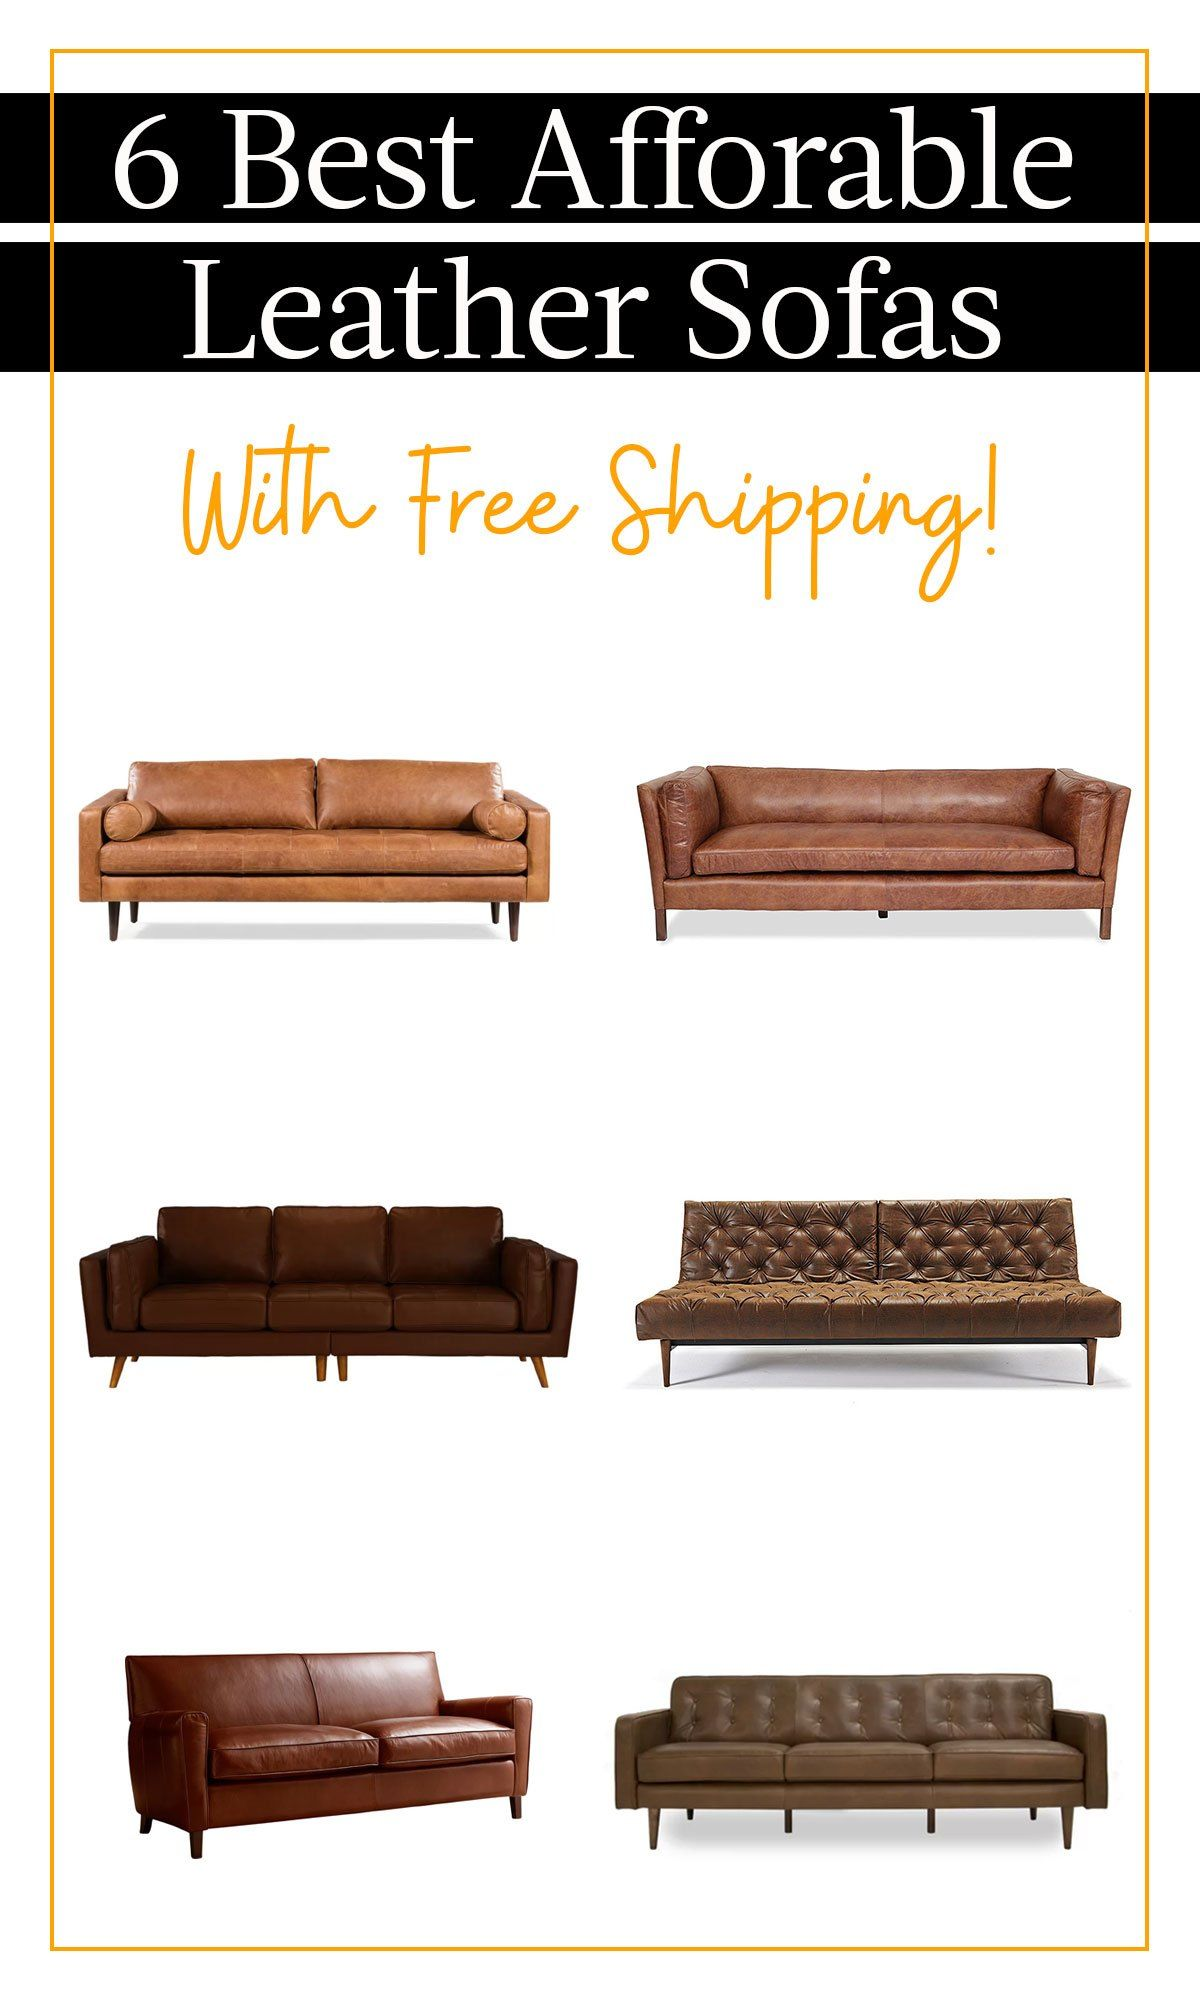 7 Affordable Leather Sofas Most With Free Shipping Distressed Leather Sofa Leather Sofa Leather Couches Living Room